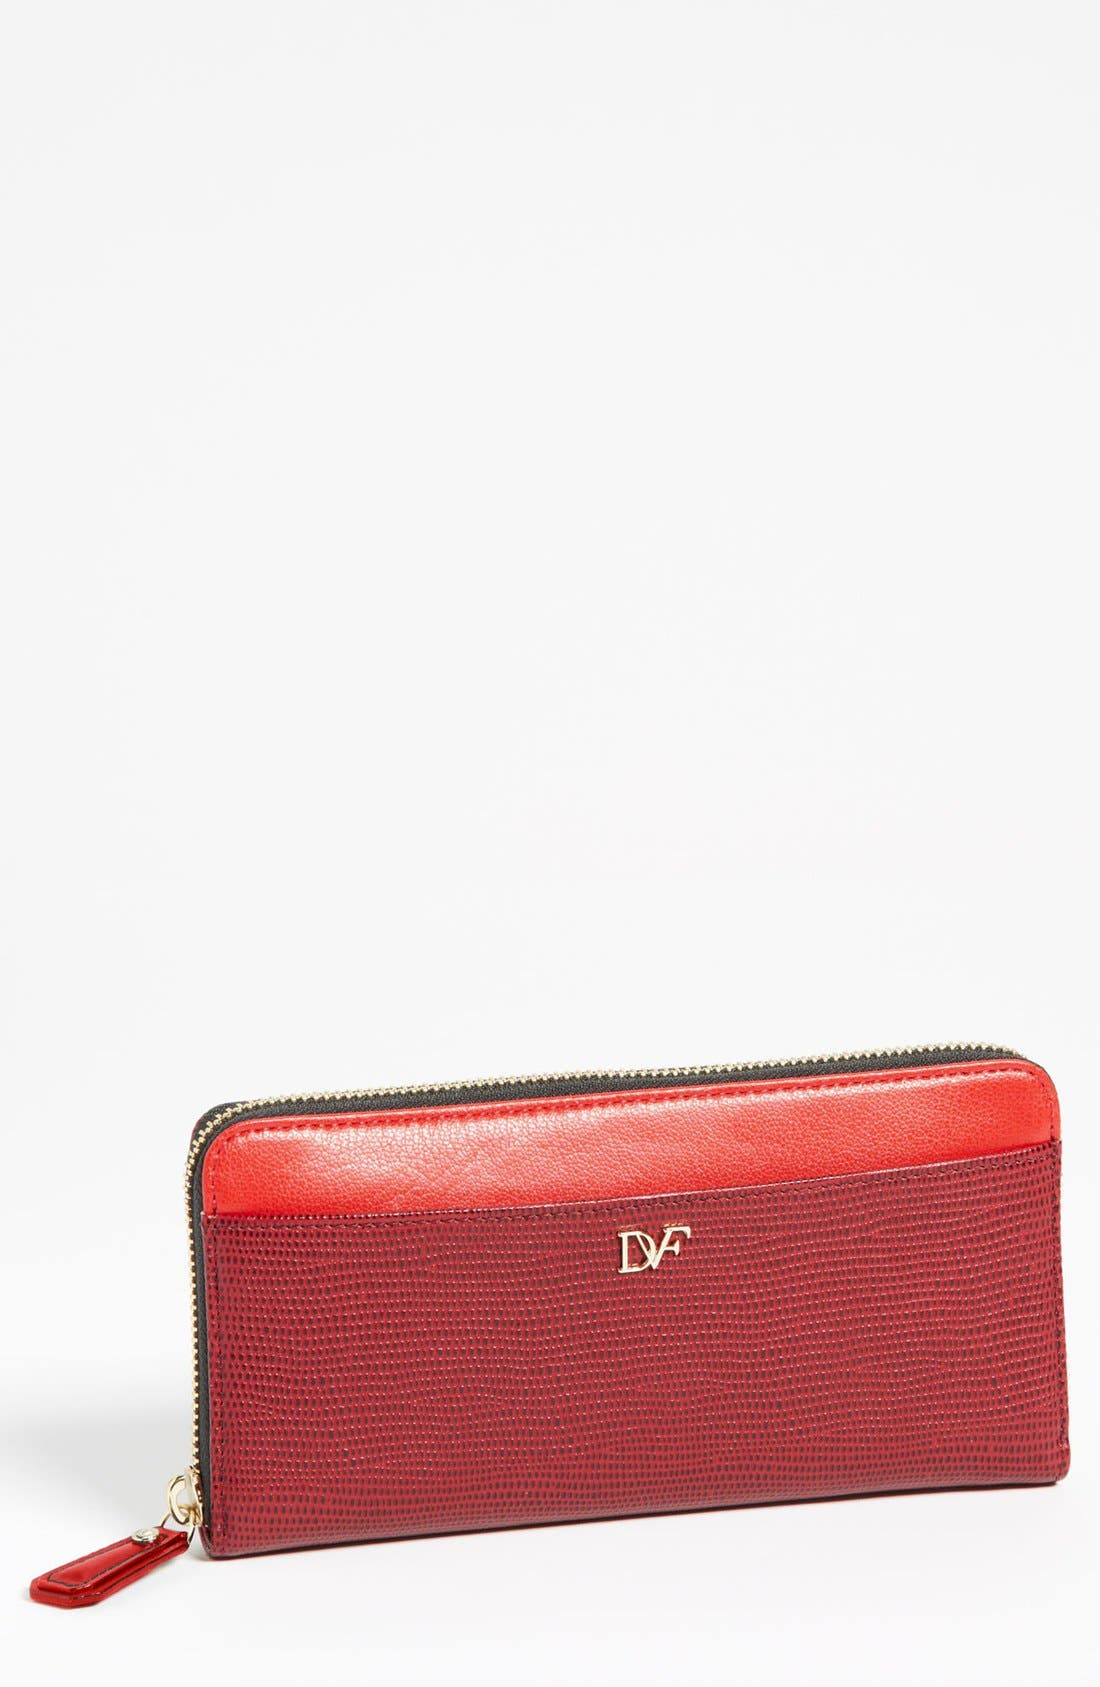 Alternate Image 1 Selected - Diane von Furstenberg Lizard Embossed Continental Wallet